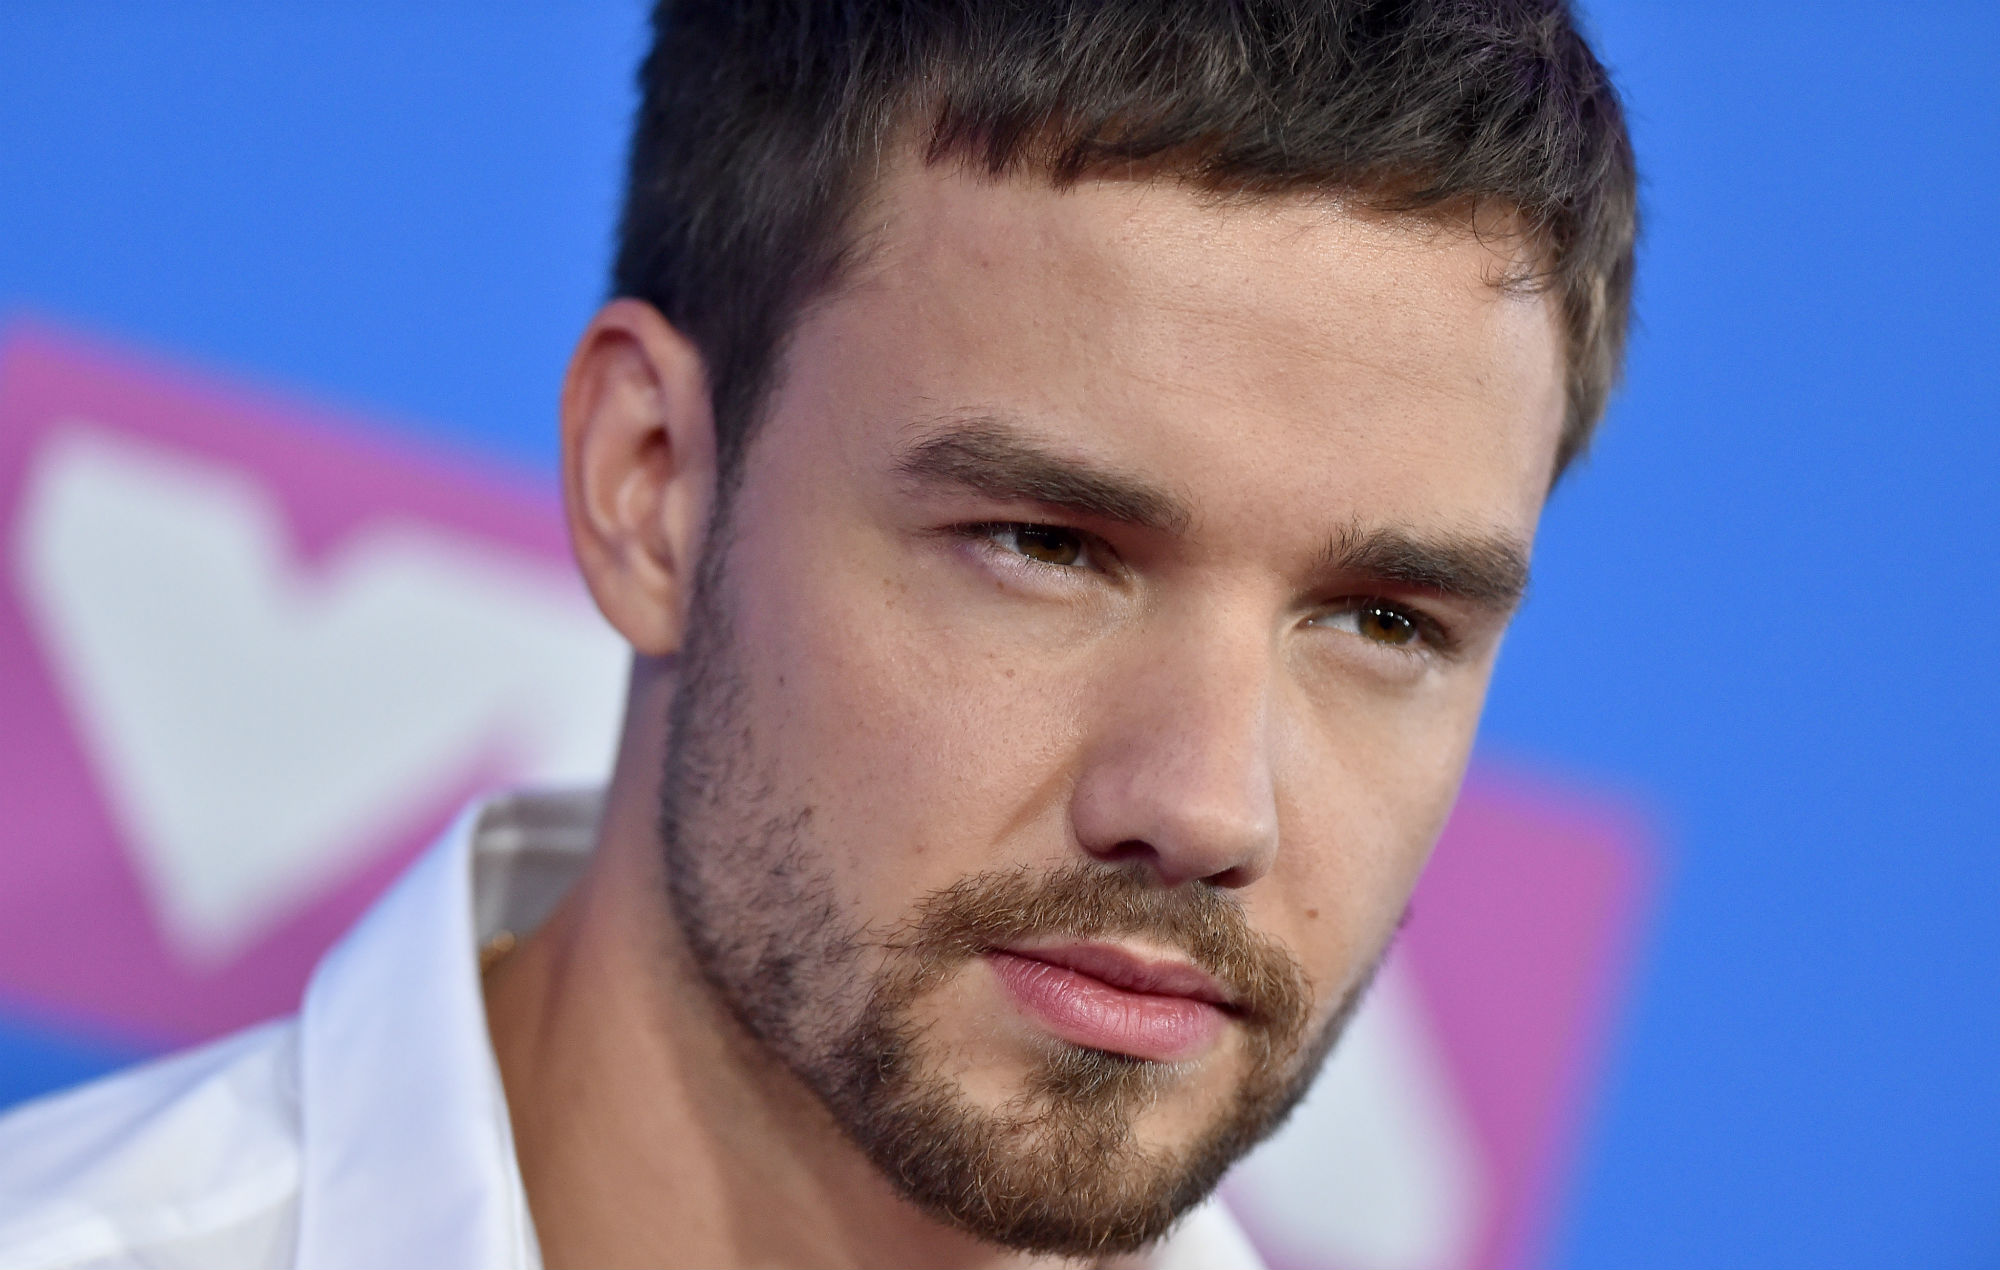 I lost complete control of everything: Liam Payne recalls stressful One Direction experiences